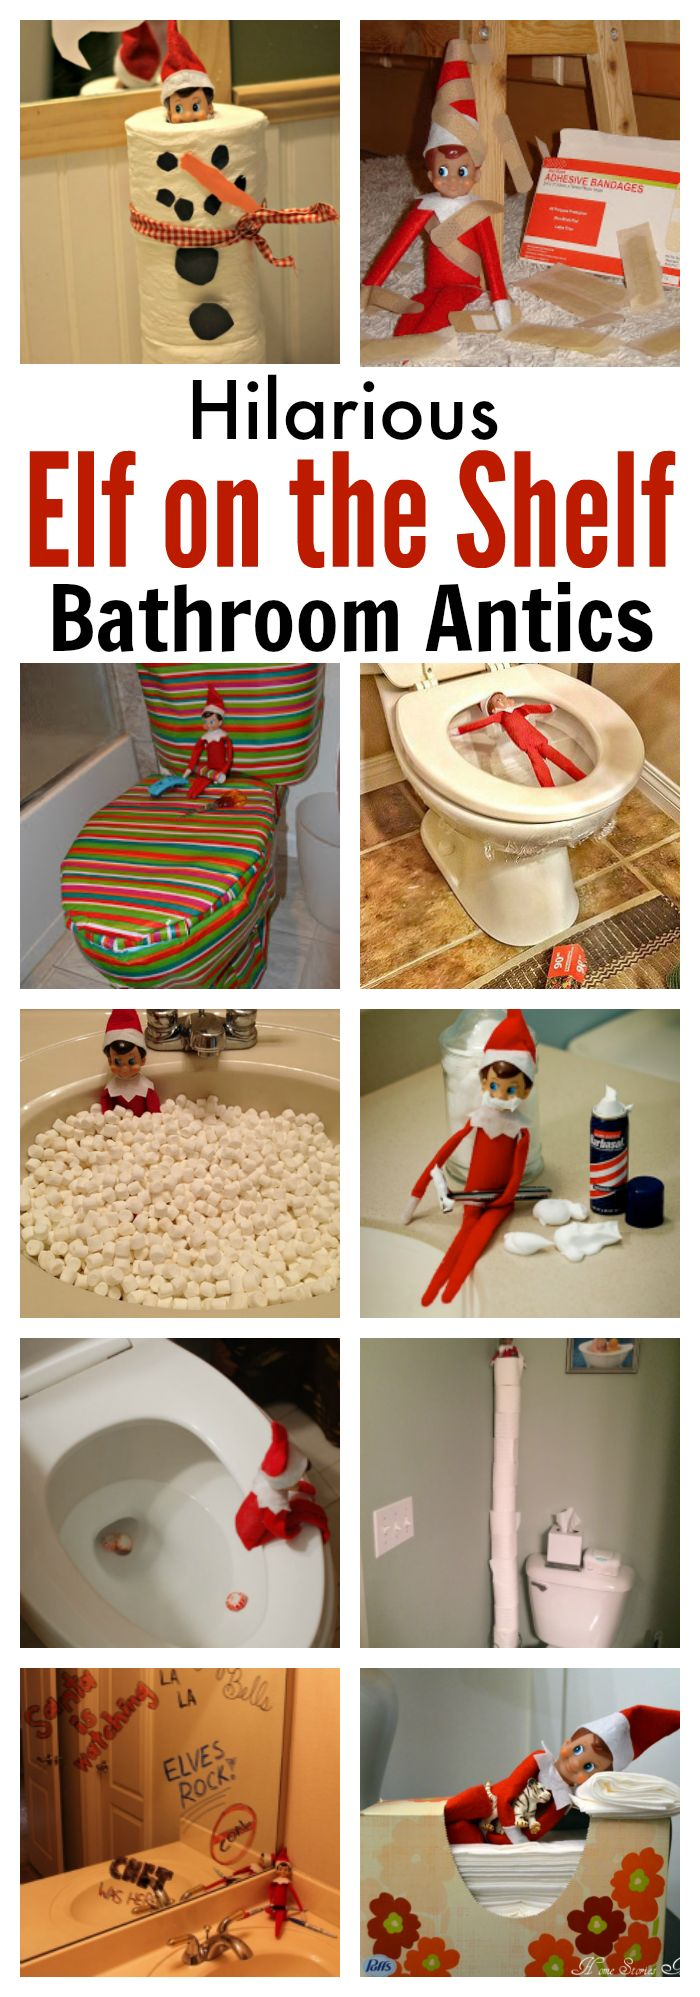 17 best ideas about elf on the shelf 2017 on pinterest for Elf on the shelf bathroom ideas